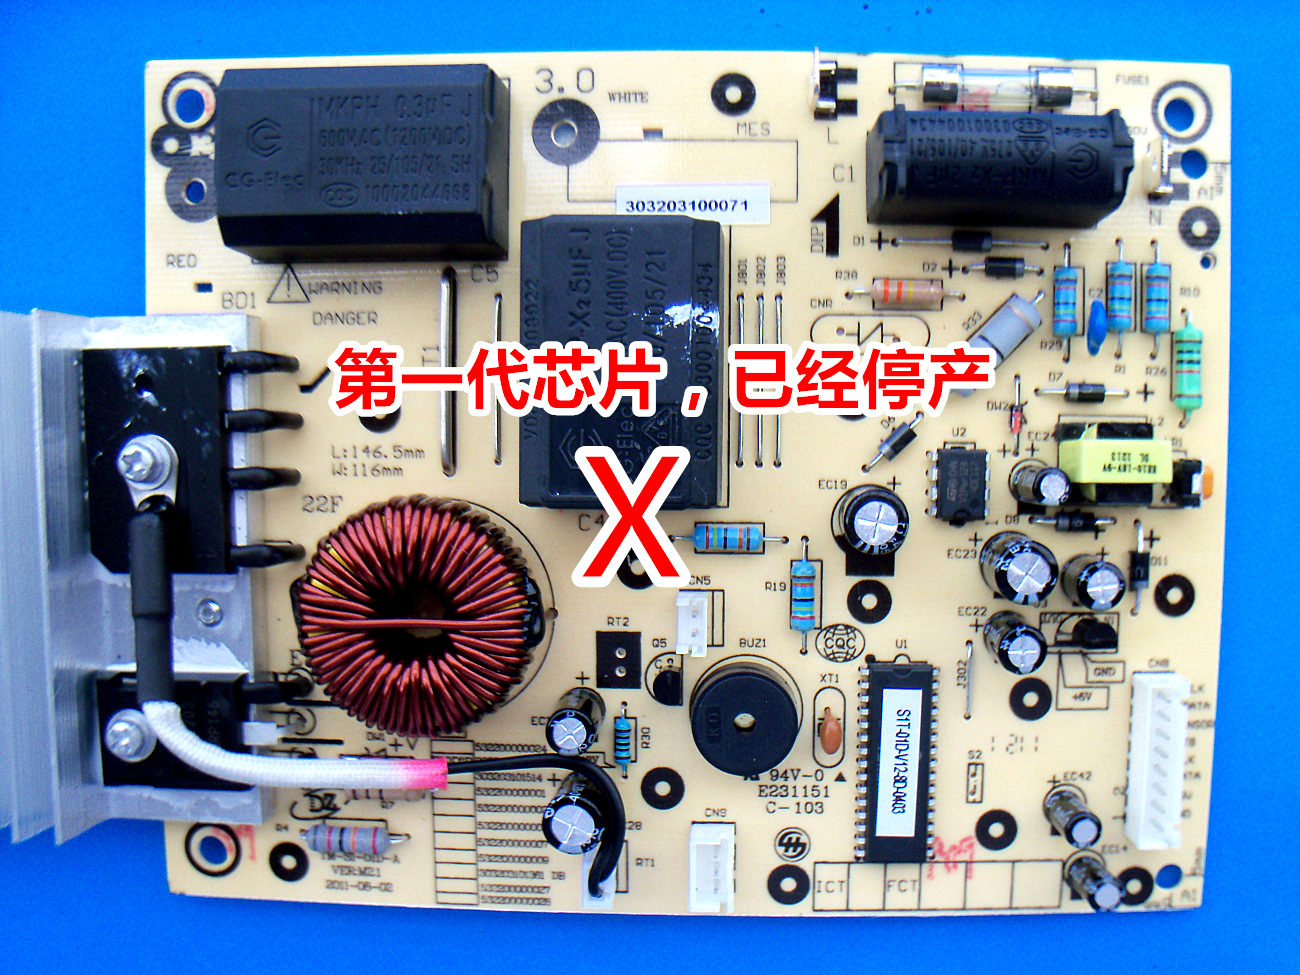 Usd 1506 Midea Induction Cooker St2101 St2105 St2118 Motherboard Picture Of Old Circuit Board S1t 01d V12 Accessories